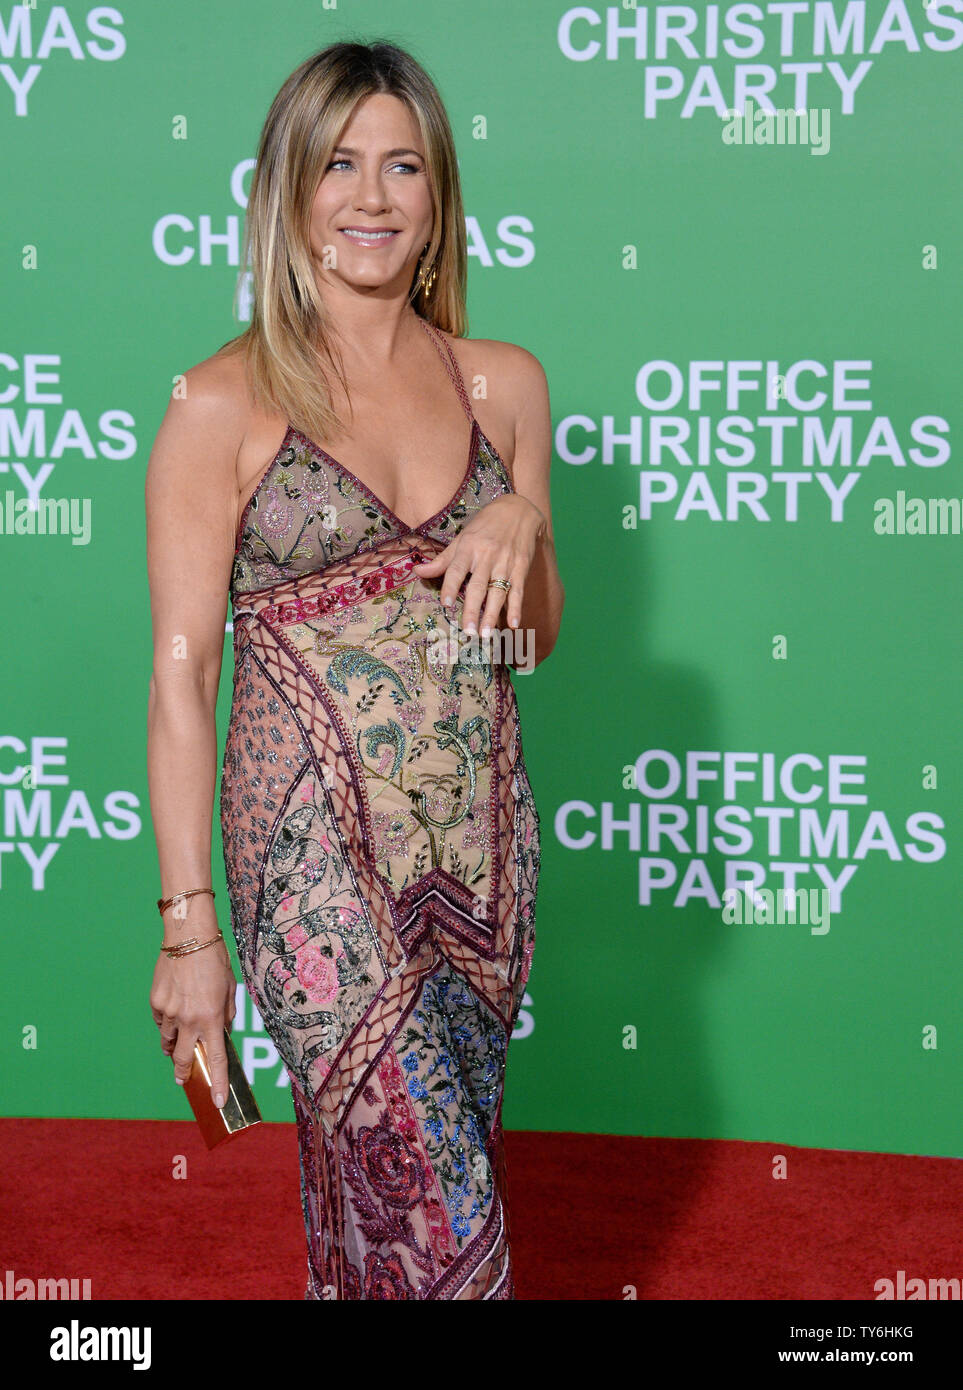 Christmas Office Party Cast.Cast Member Jennifer Aniston Attends The Premiere Of The